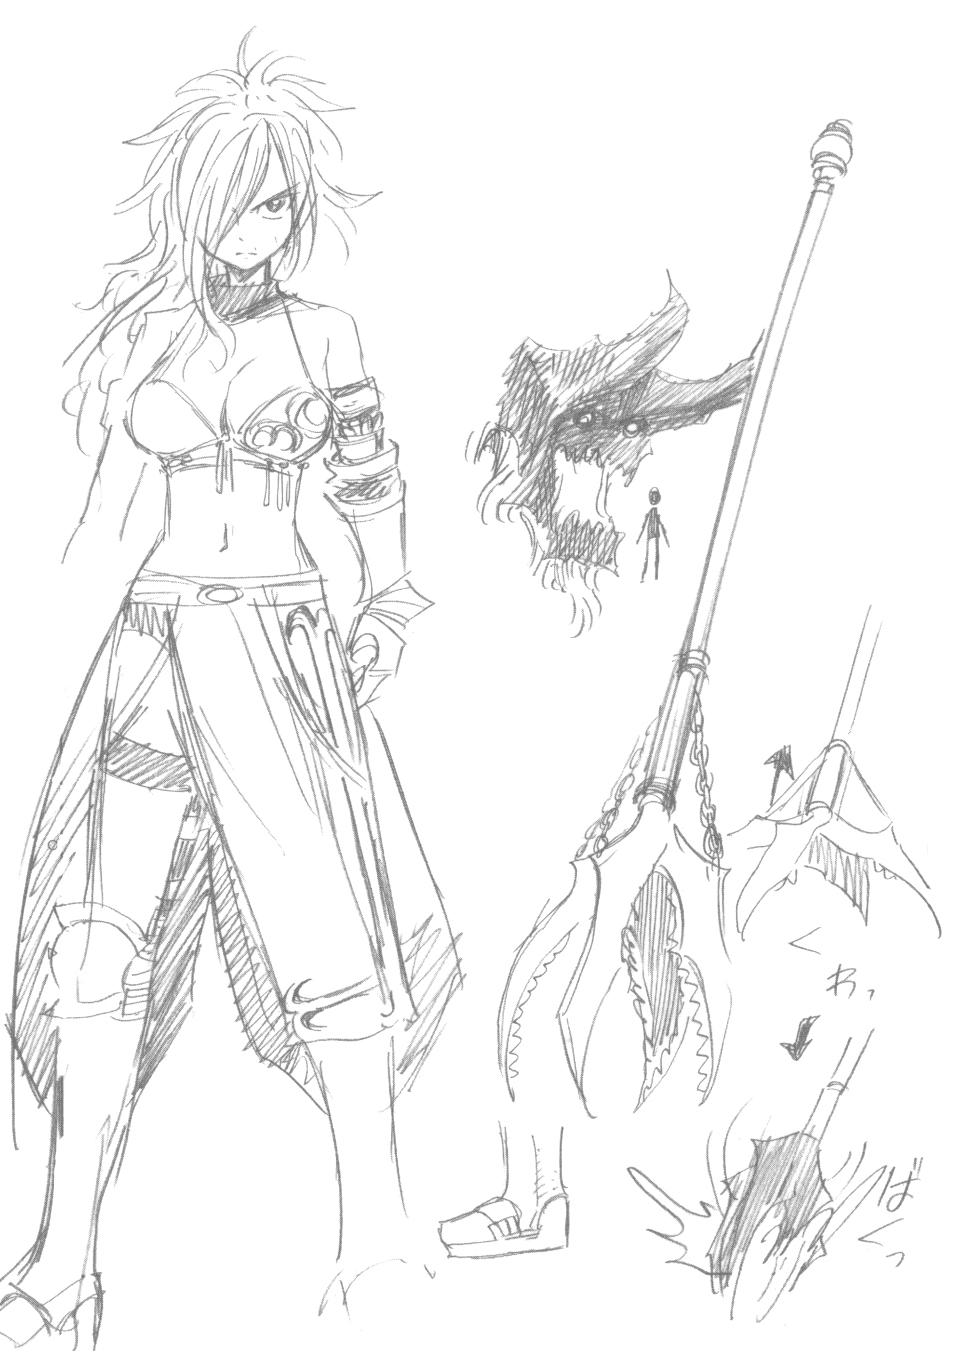 Image - Early sketches of Erza Knightwalker.jpg | Fairy Tail Wiki ...